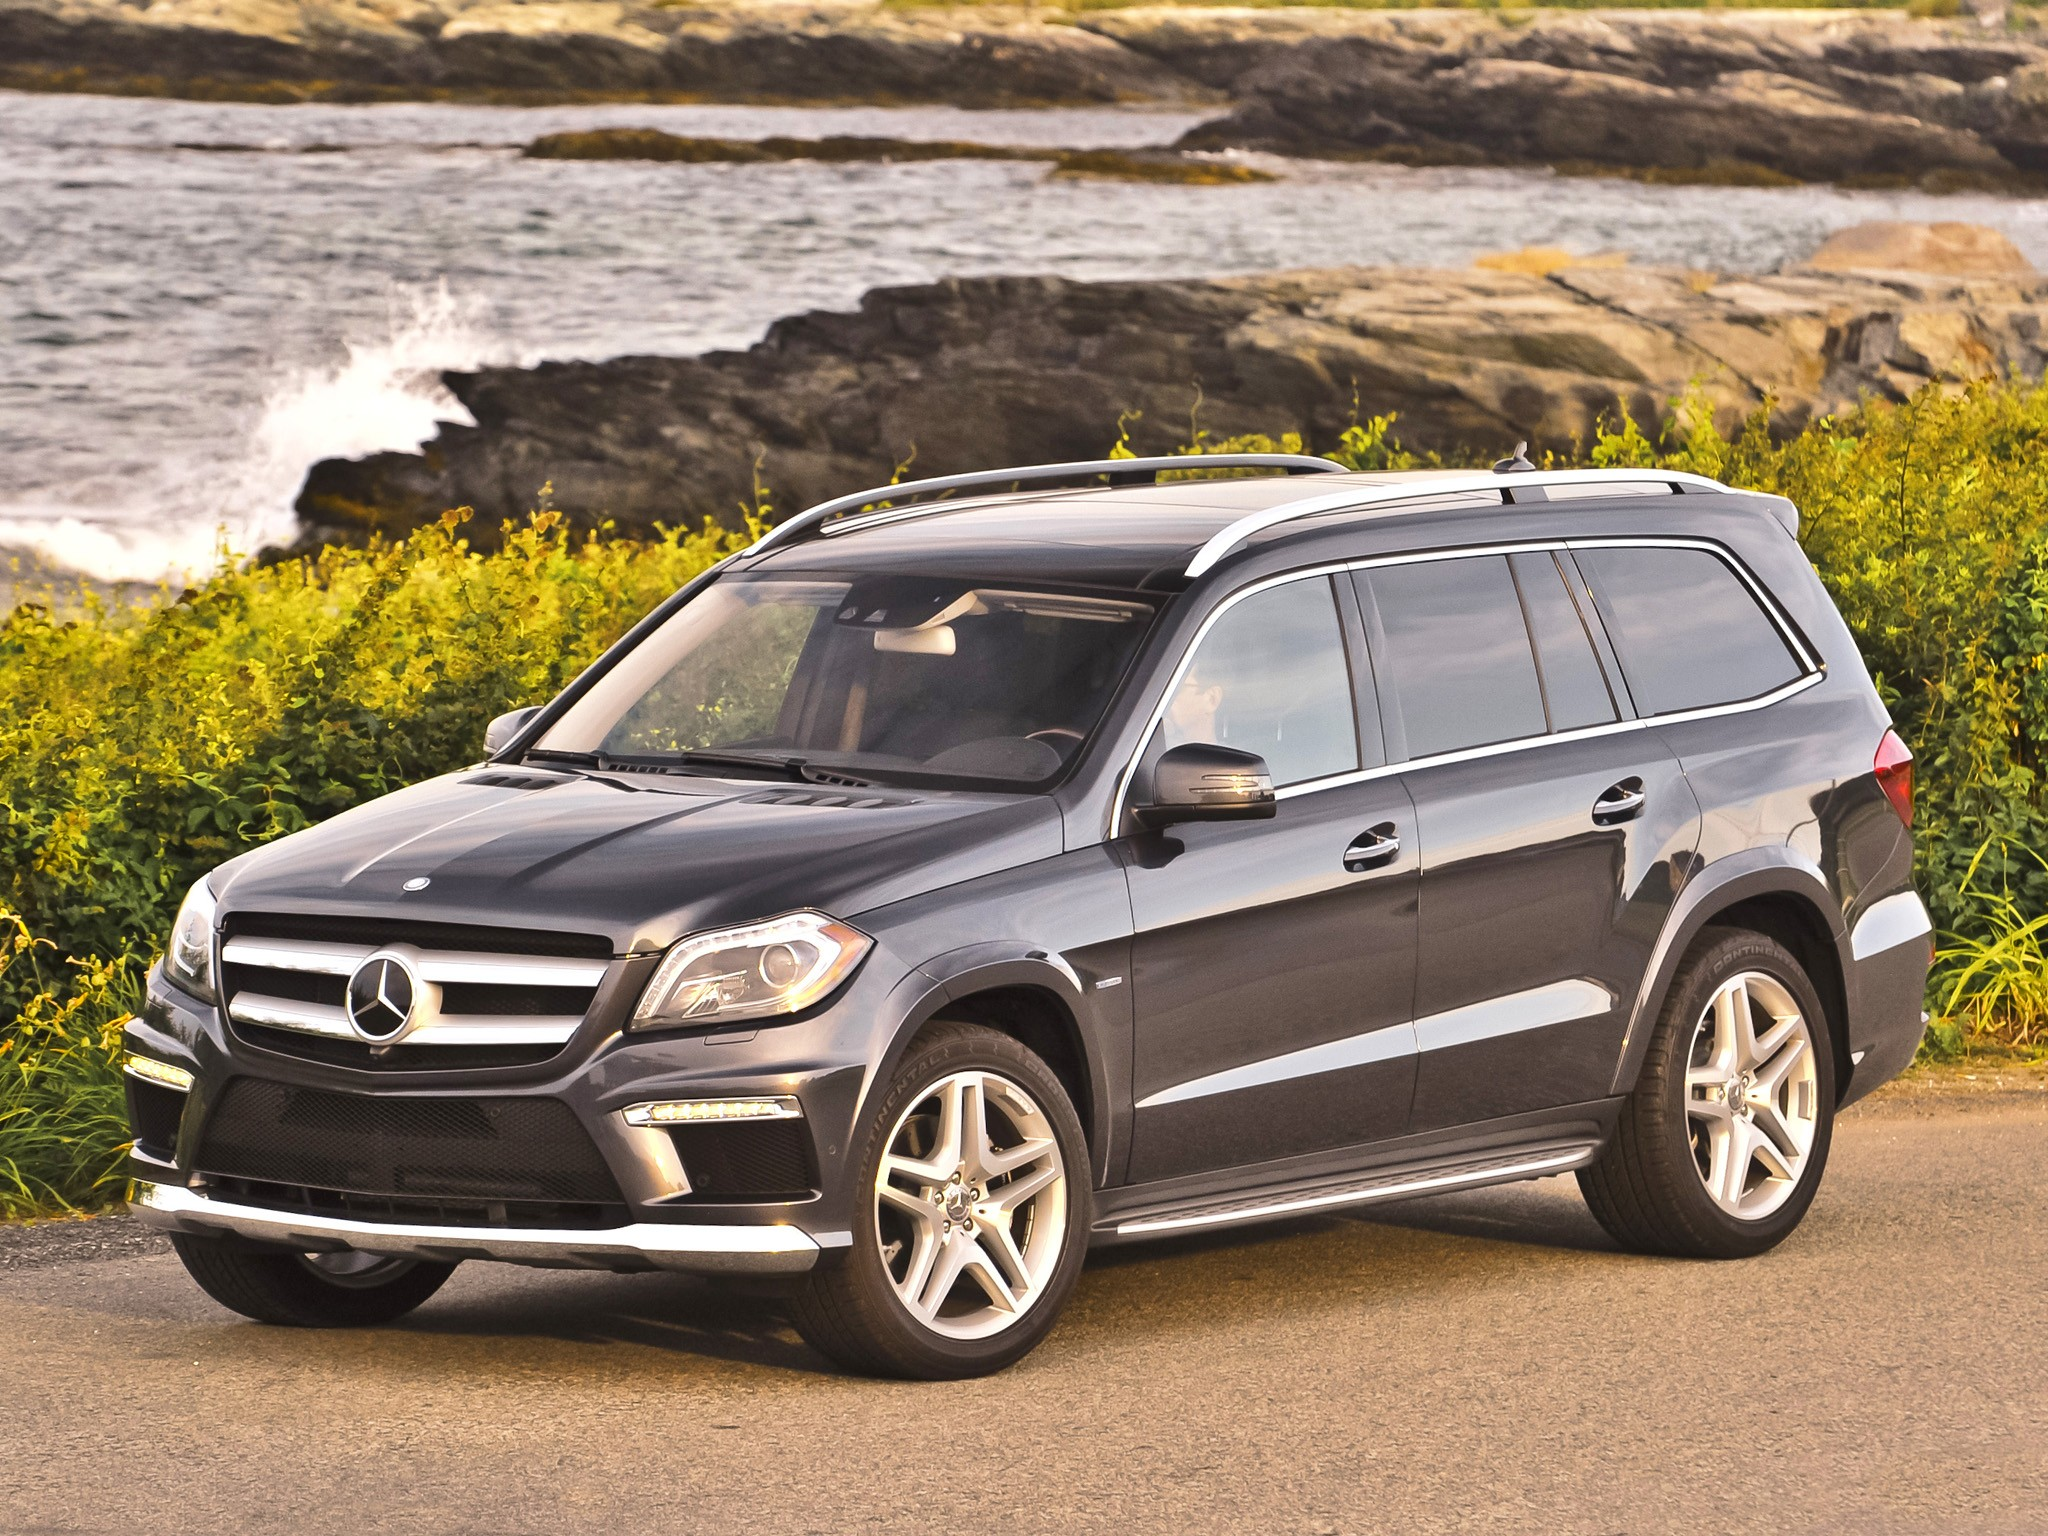 Mercedes benz gl klasse x165 specs 2012 2013 2014 for 2012 mercedes benz gl550